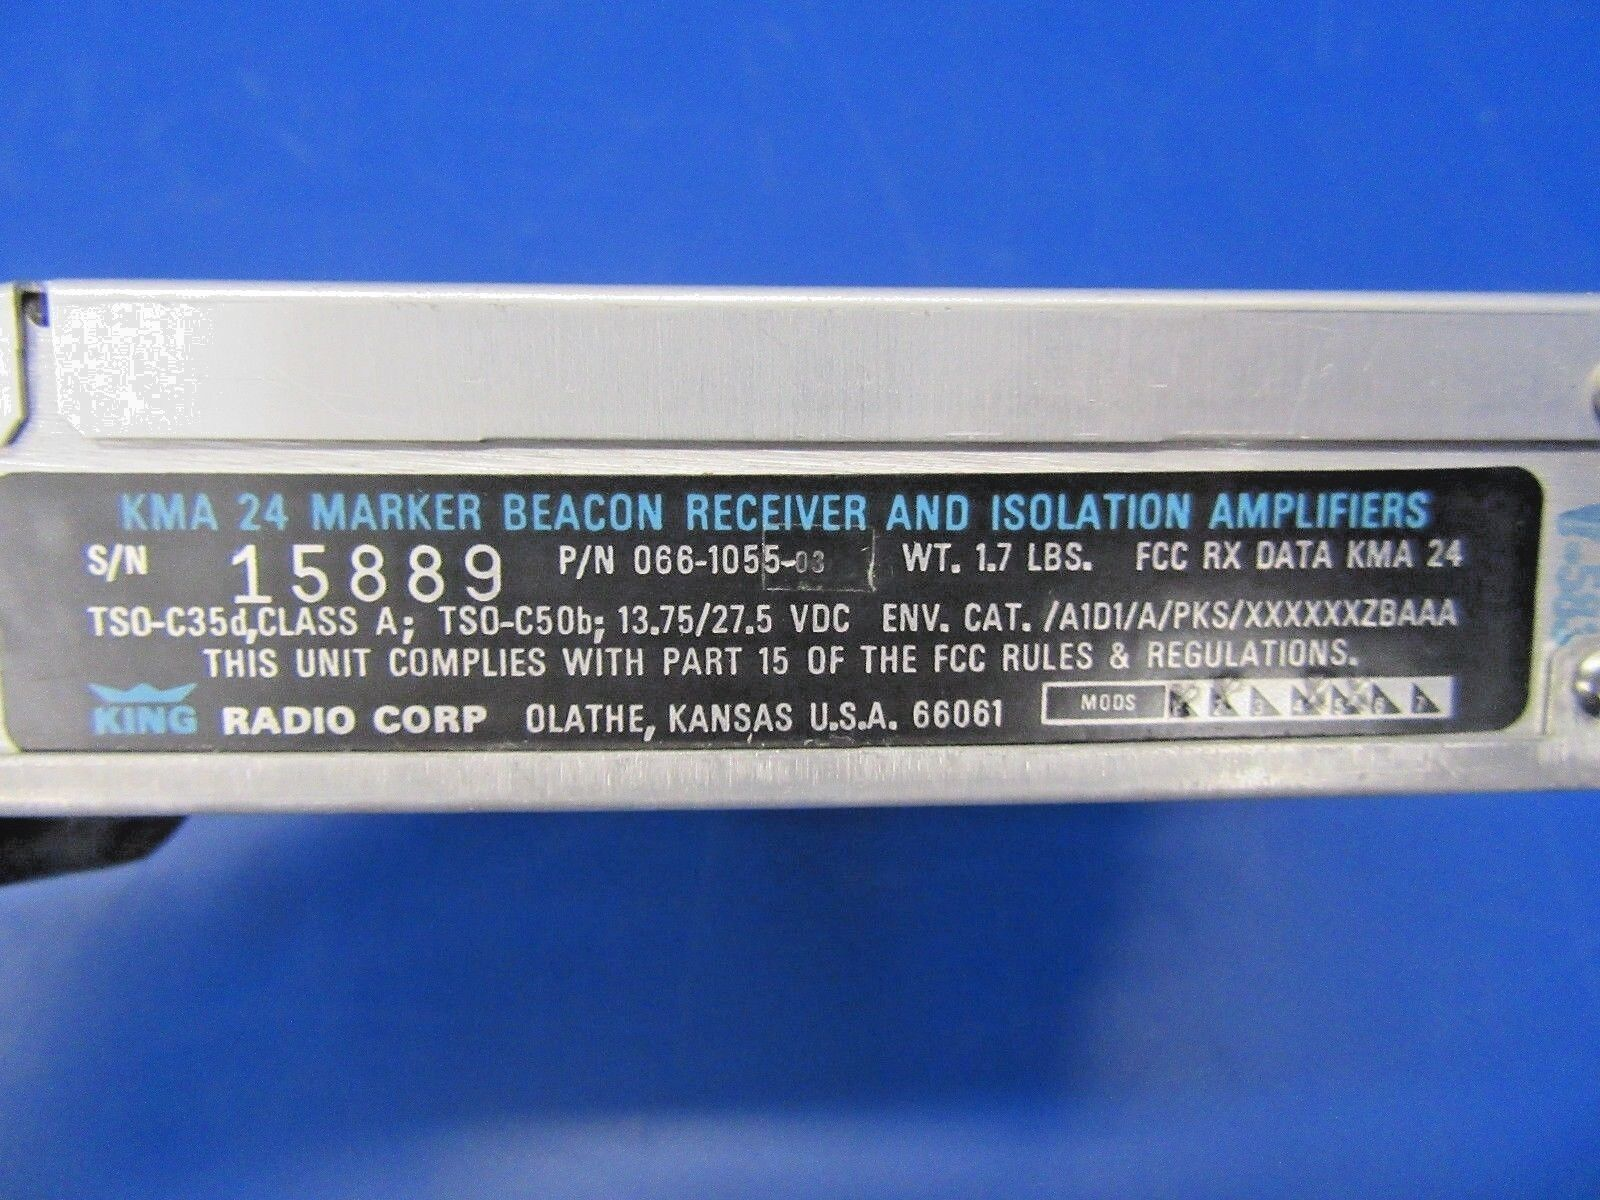 King KMA-24 Audio Panel & Marker Beacon P/N 066-1055-03 (0518-103)